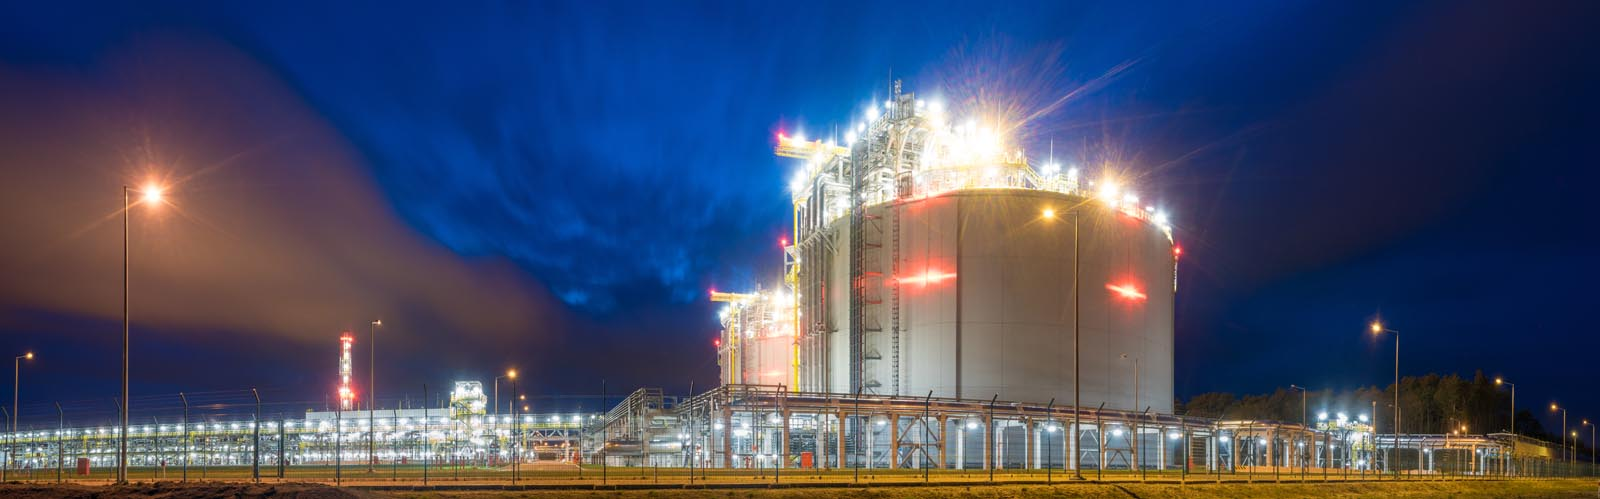 If critical assets in the LNG facility like valve, instruments, and control systems don't work as expected, reliability can be impacted.